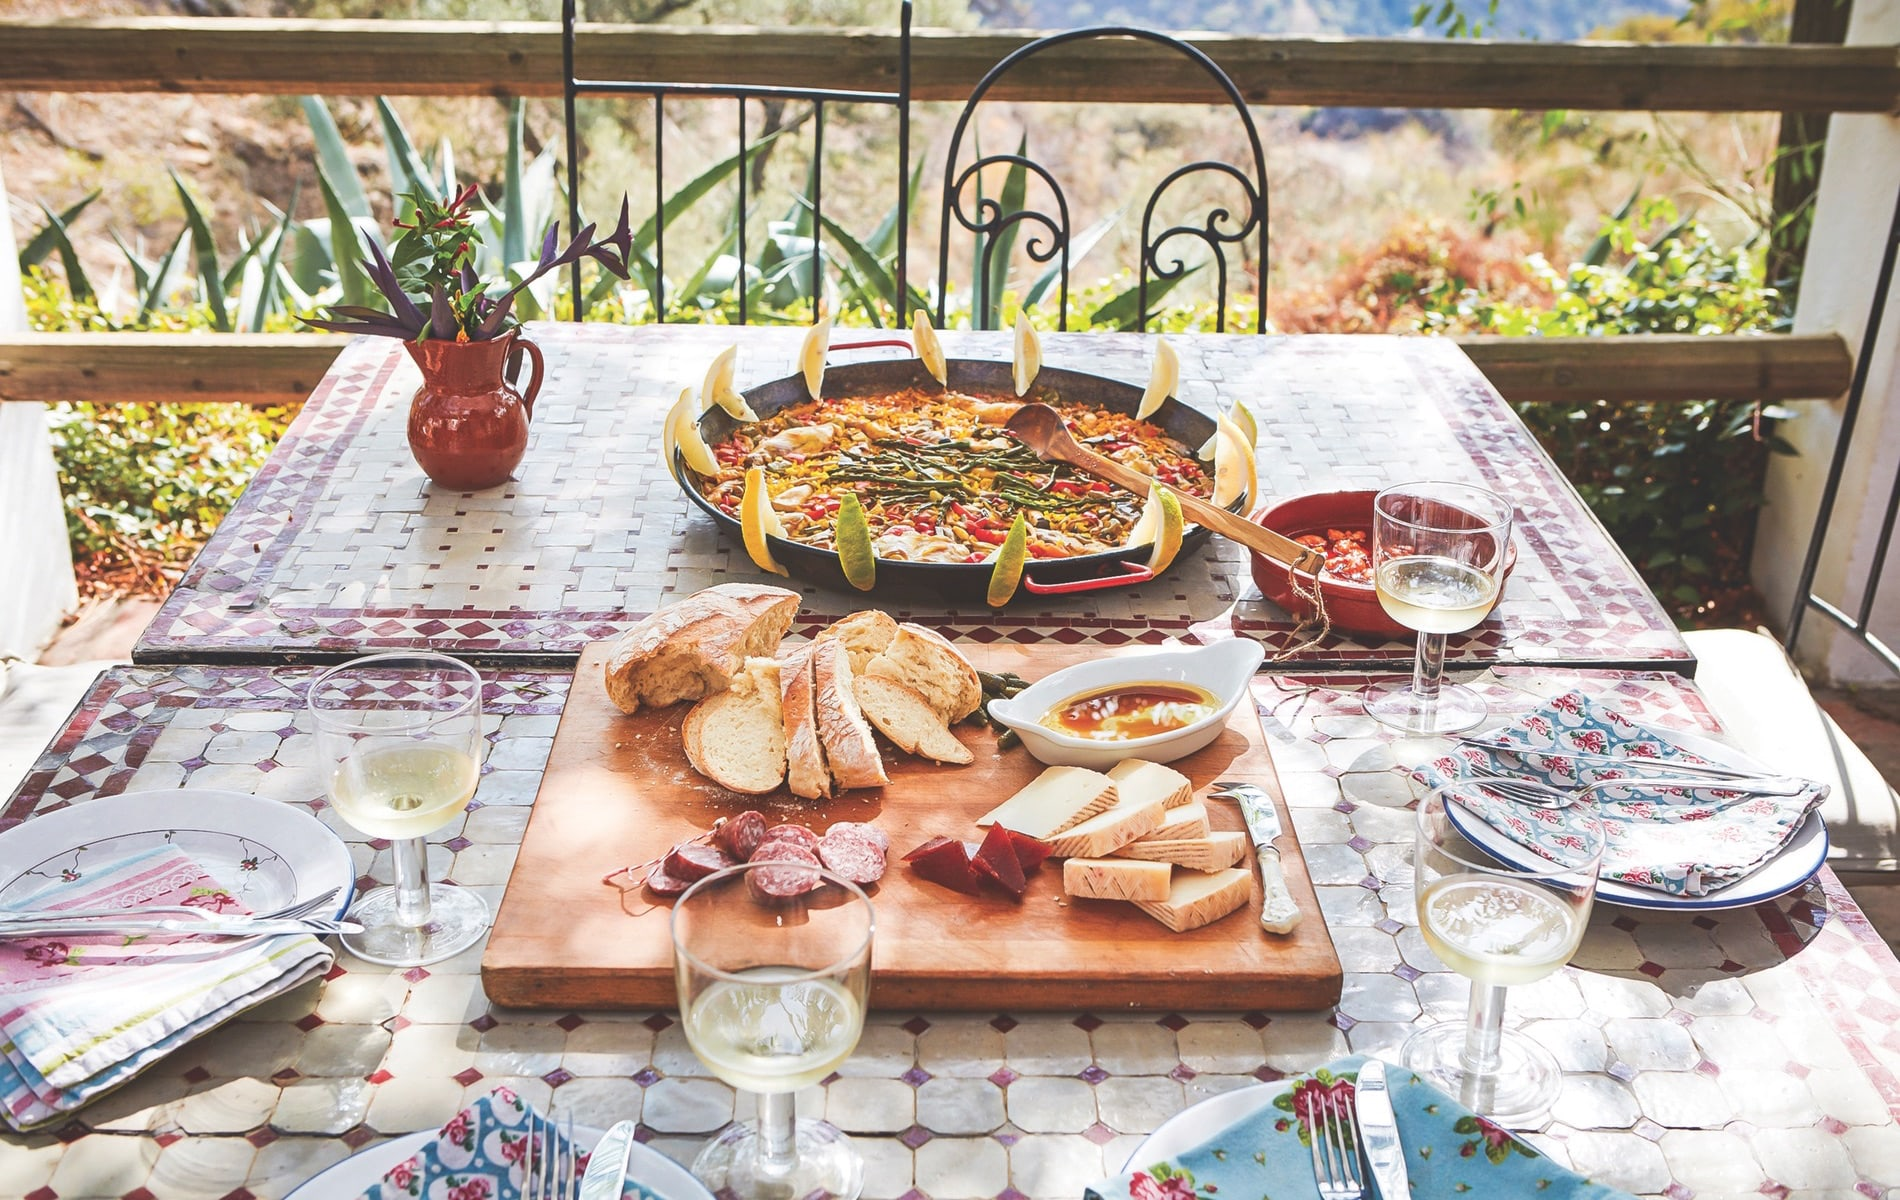 A seafood paella preceded by cheese, charcuterie, and bread with good olive oil is the quintessential Spanish celebration feast.